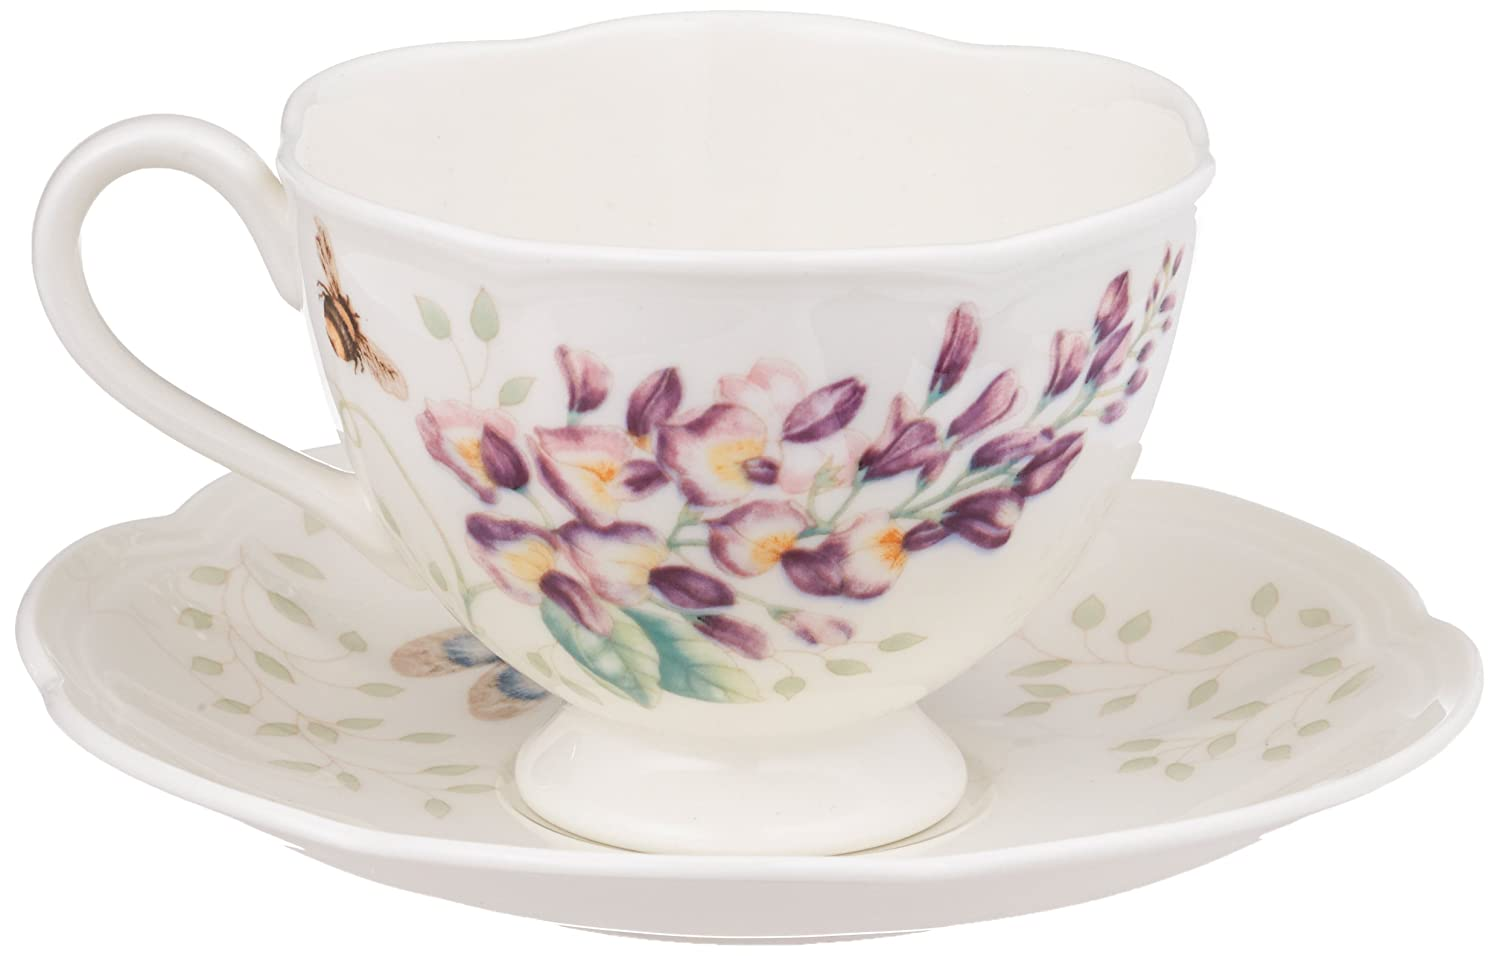 Lenox Butterfly Meadow Blue Butterfly Cup and Saucer Set